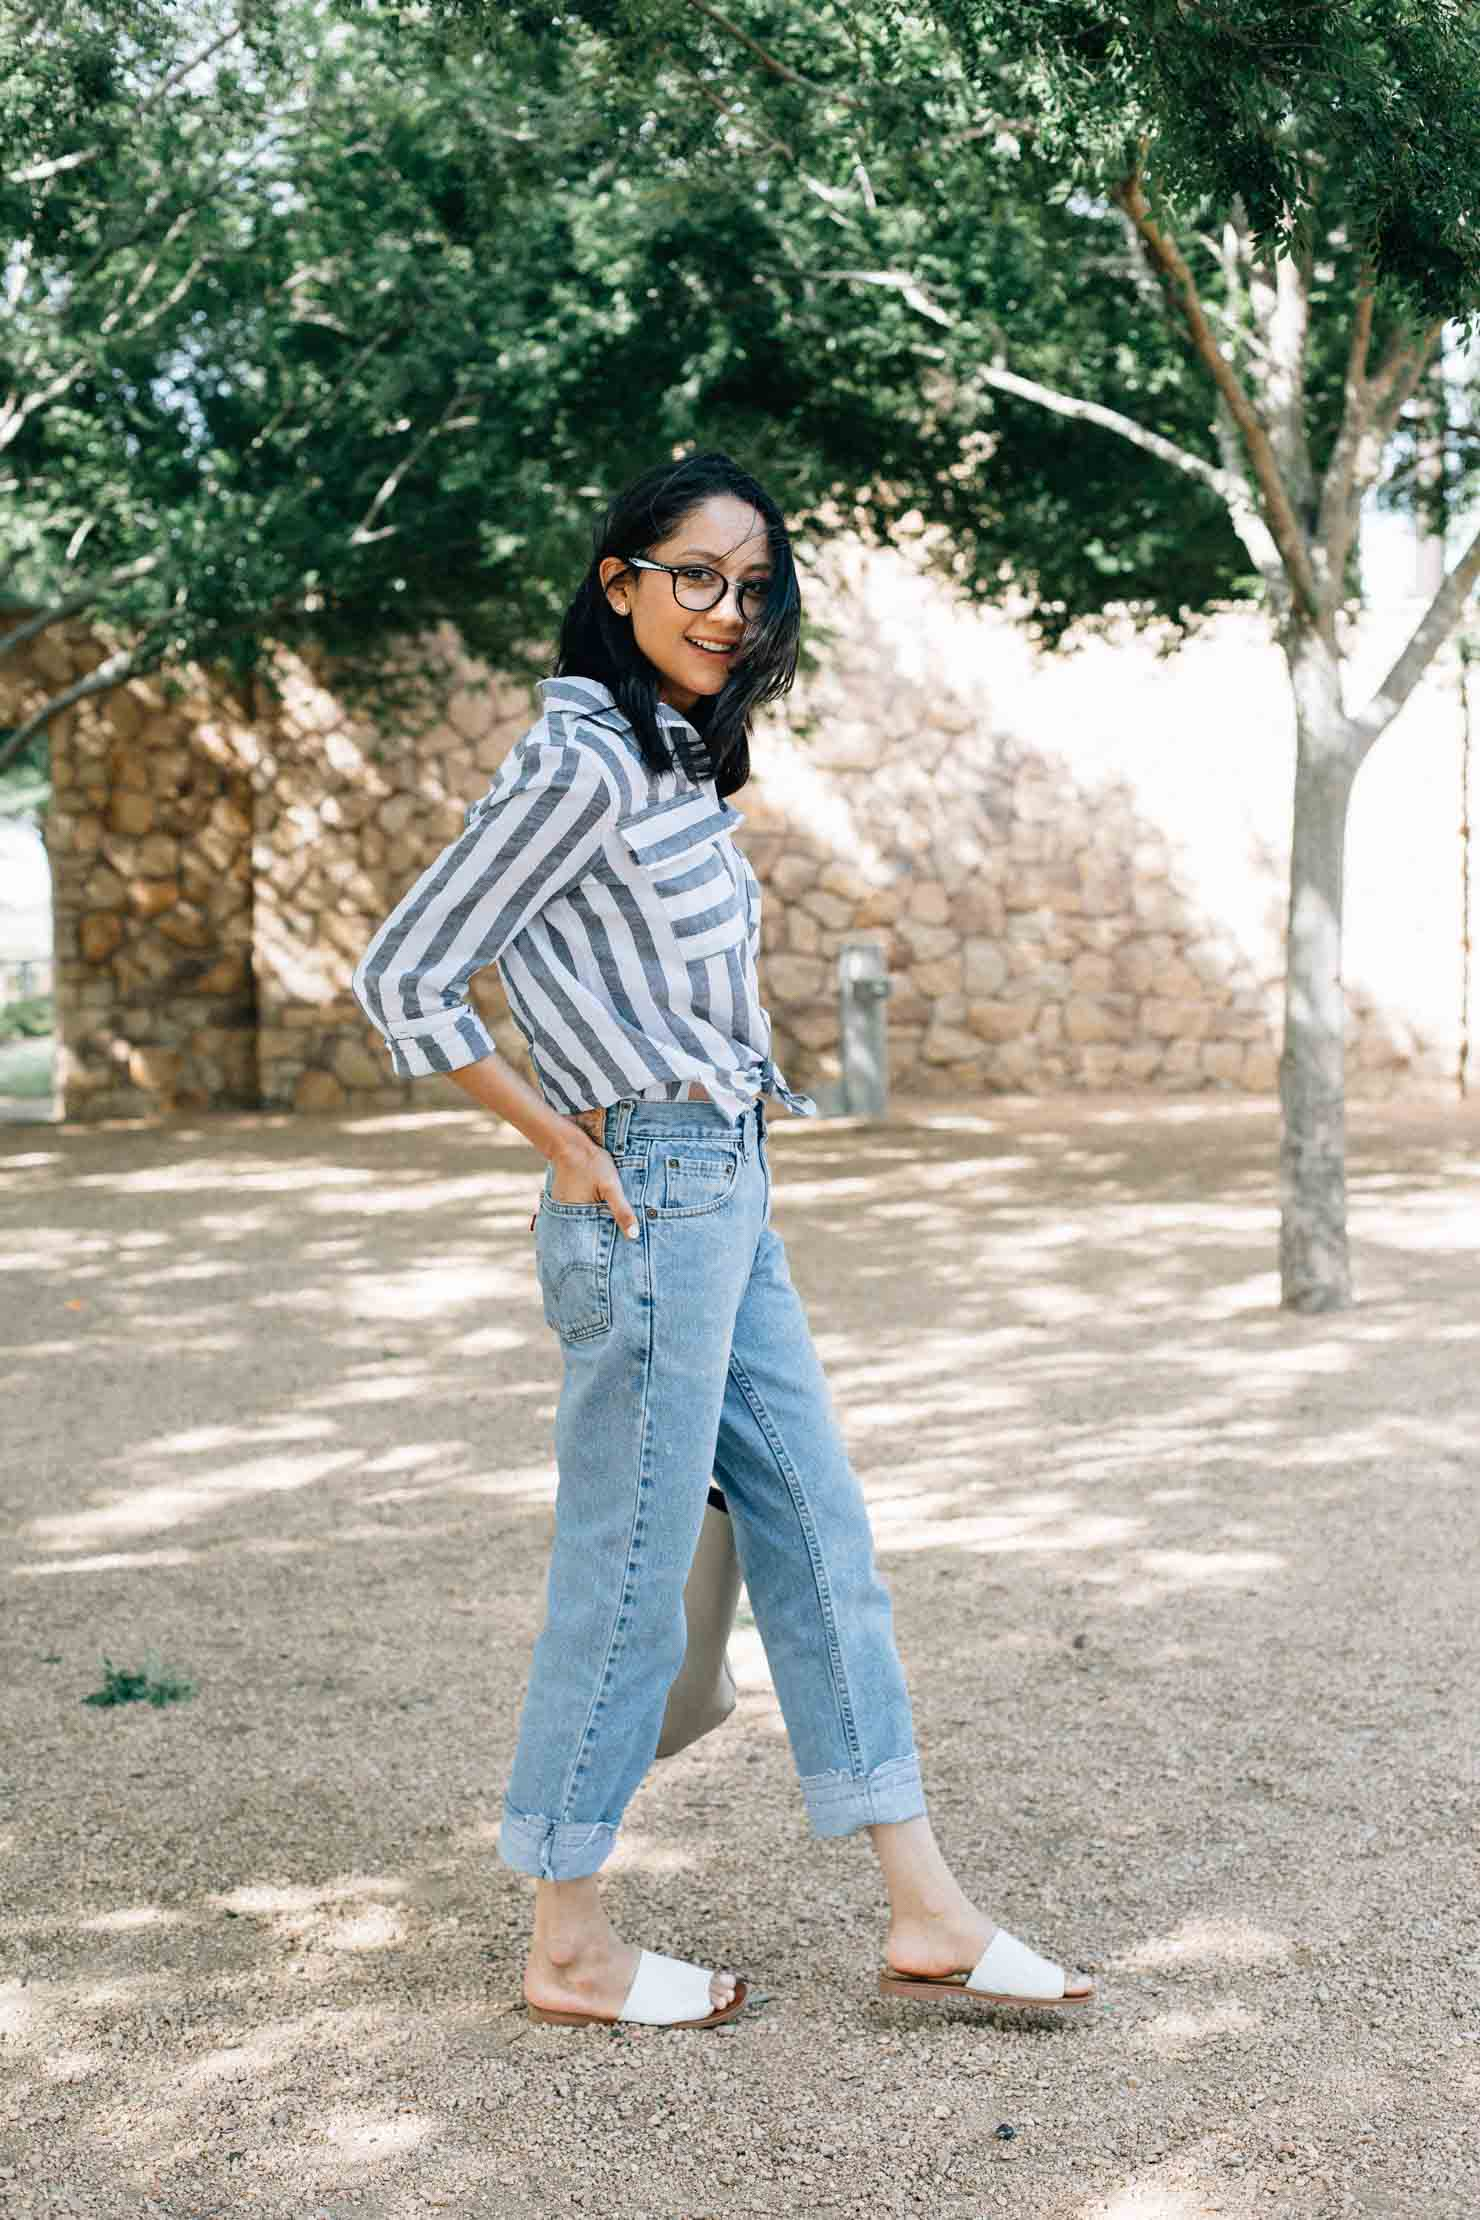 Lilly Beltran Houston based fashion & lifestyle blogger in Vintage Levi's denim and striped linen shirt